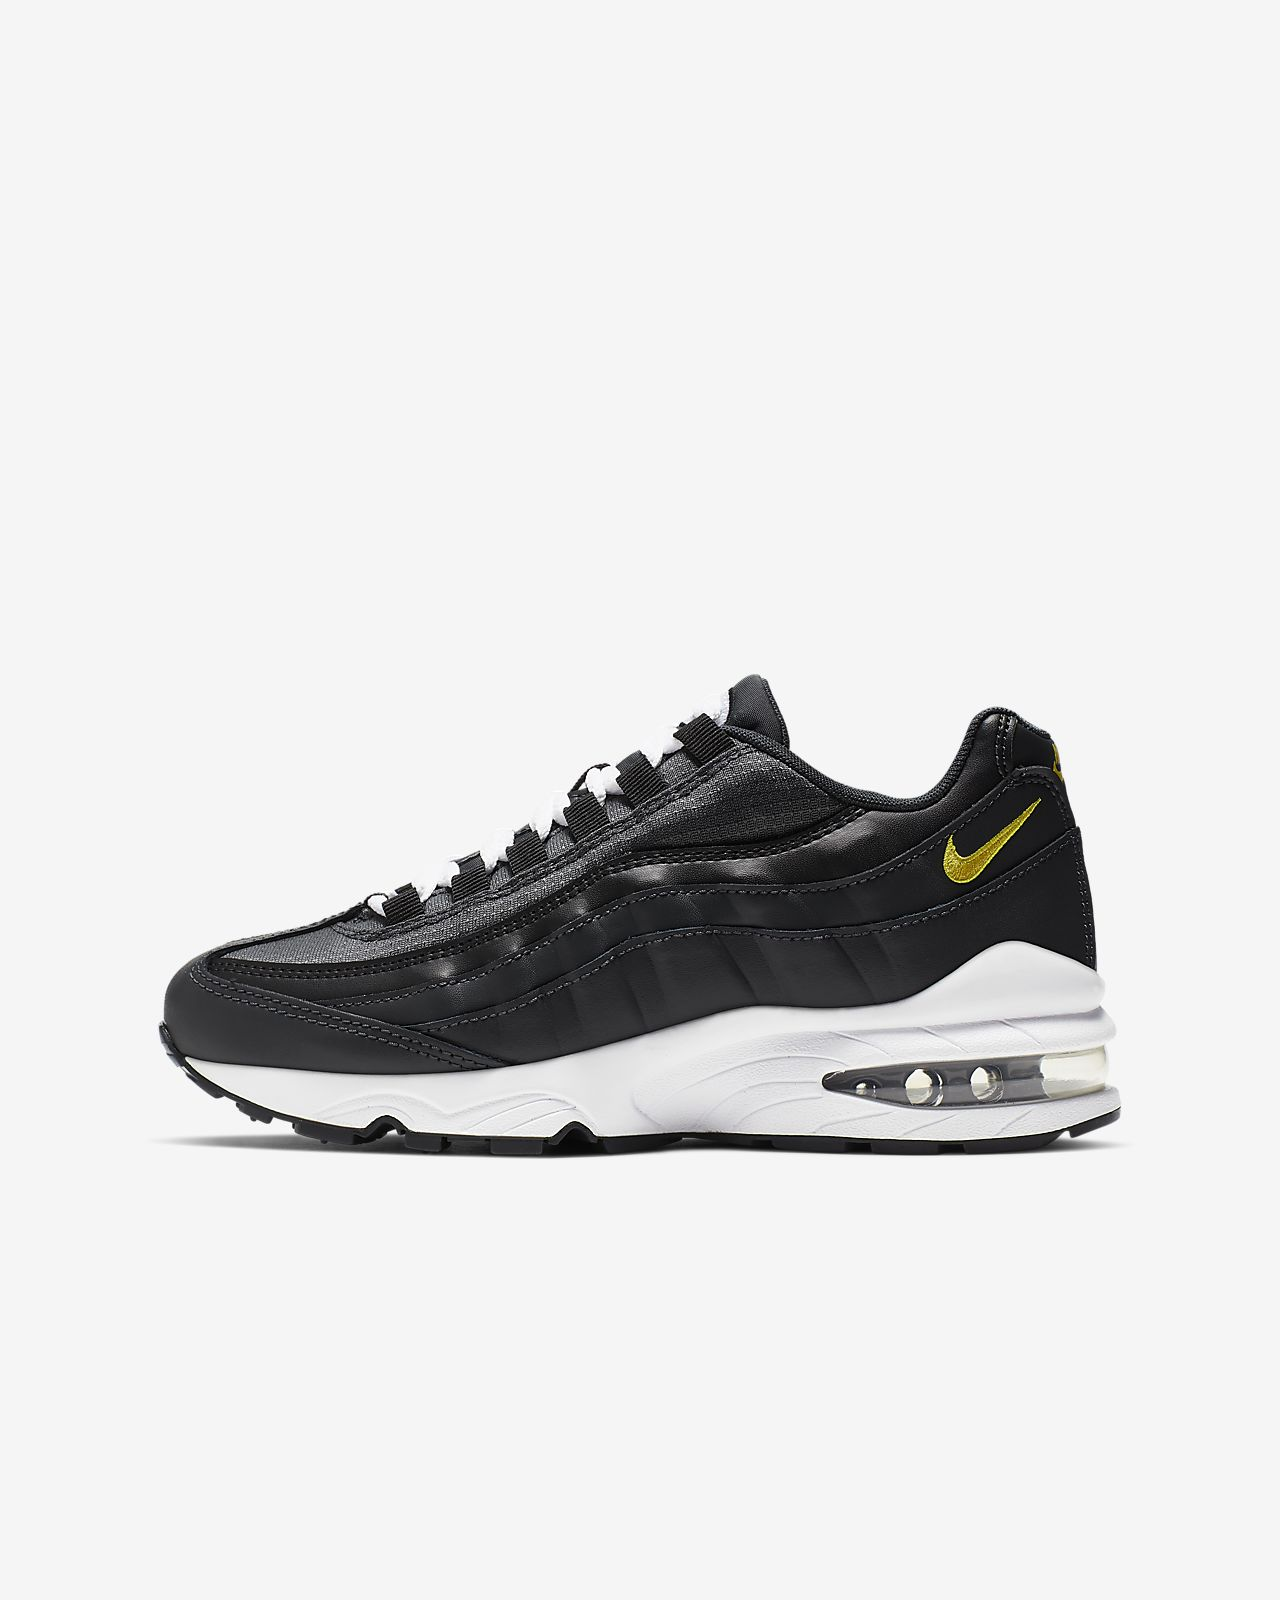 low priced bb8ff 628e3 Big Kids  Shoe. Nike Air Max 95